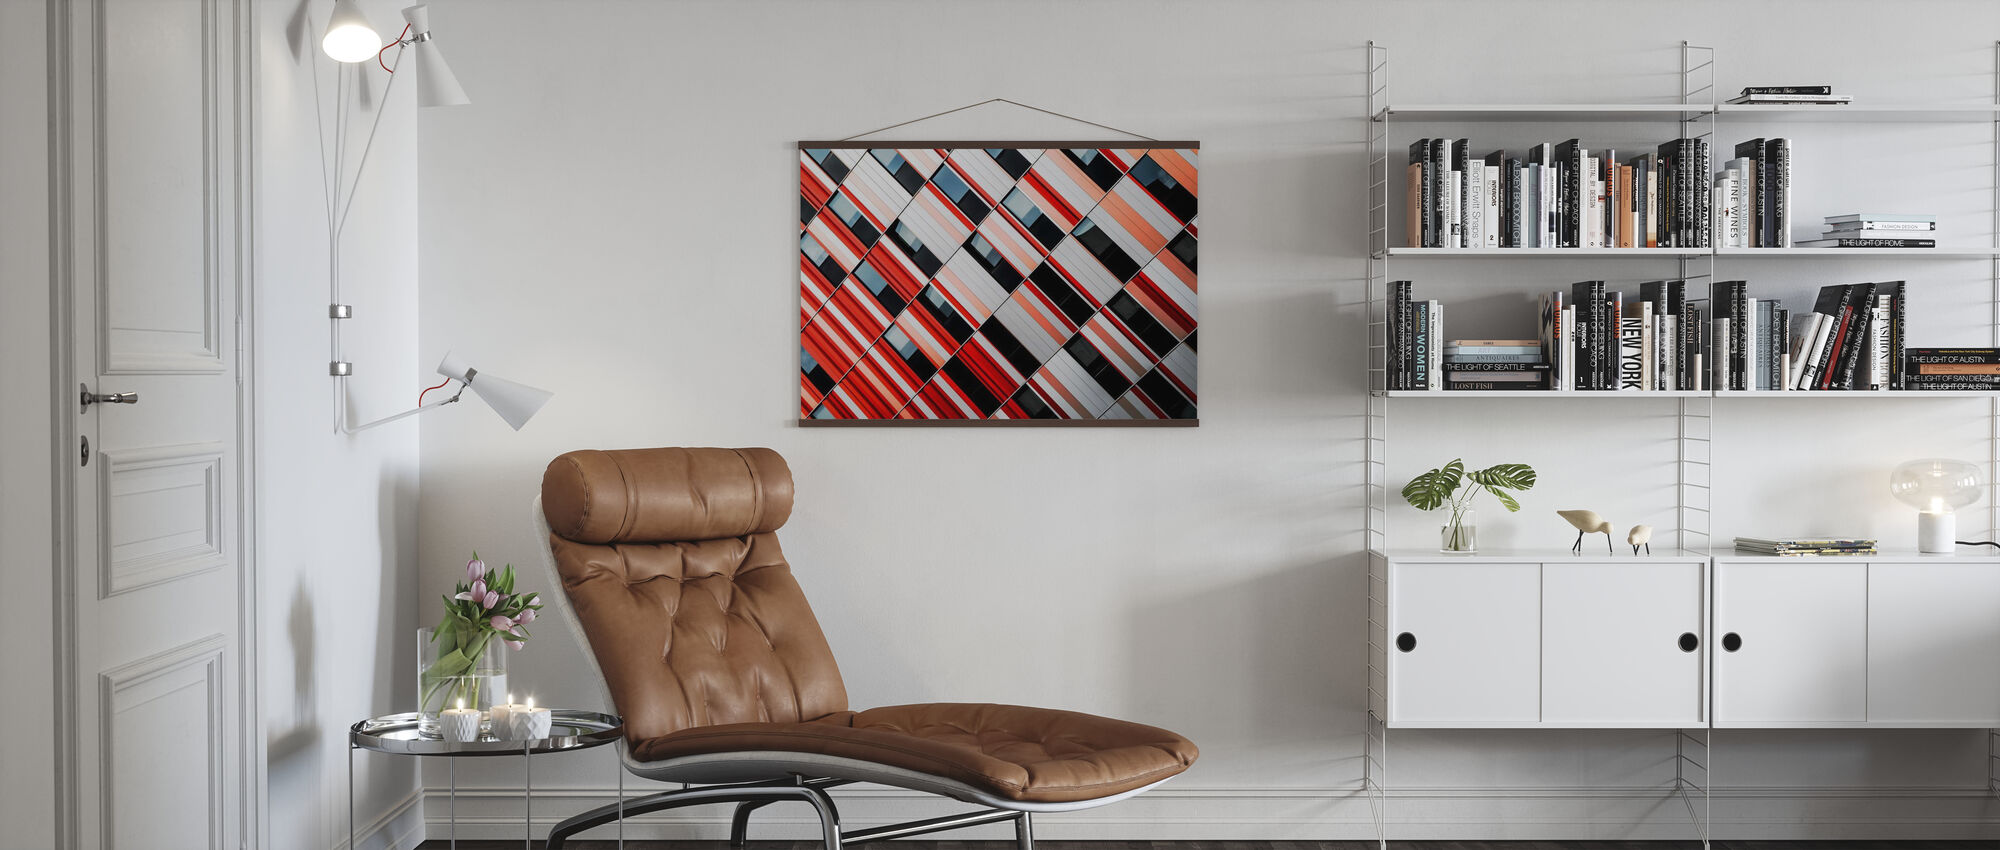 MoZa - Poster - Living Room